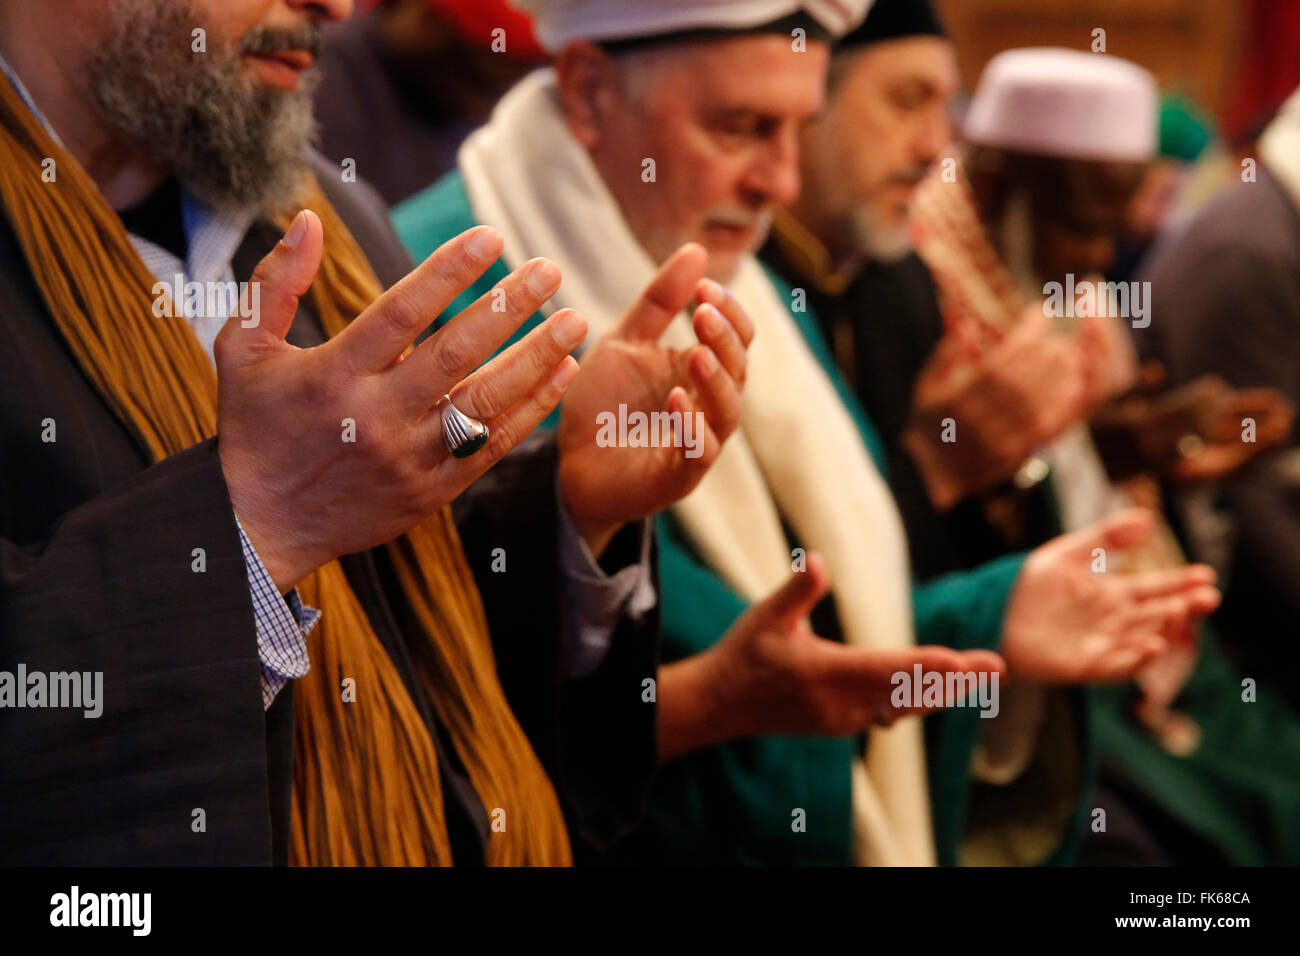 Naqshbandi Sufis praying, Nandy, Seine-et-Marne, France, Europe - Stock Image